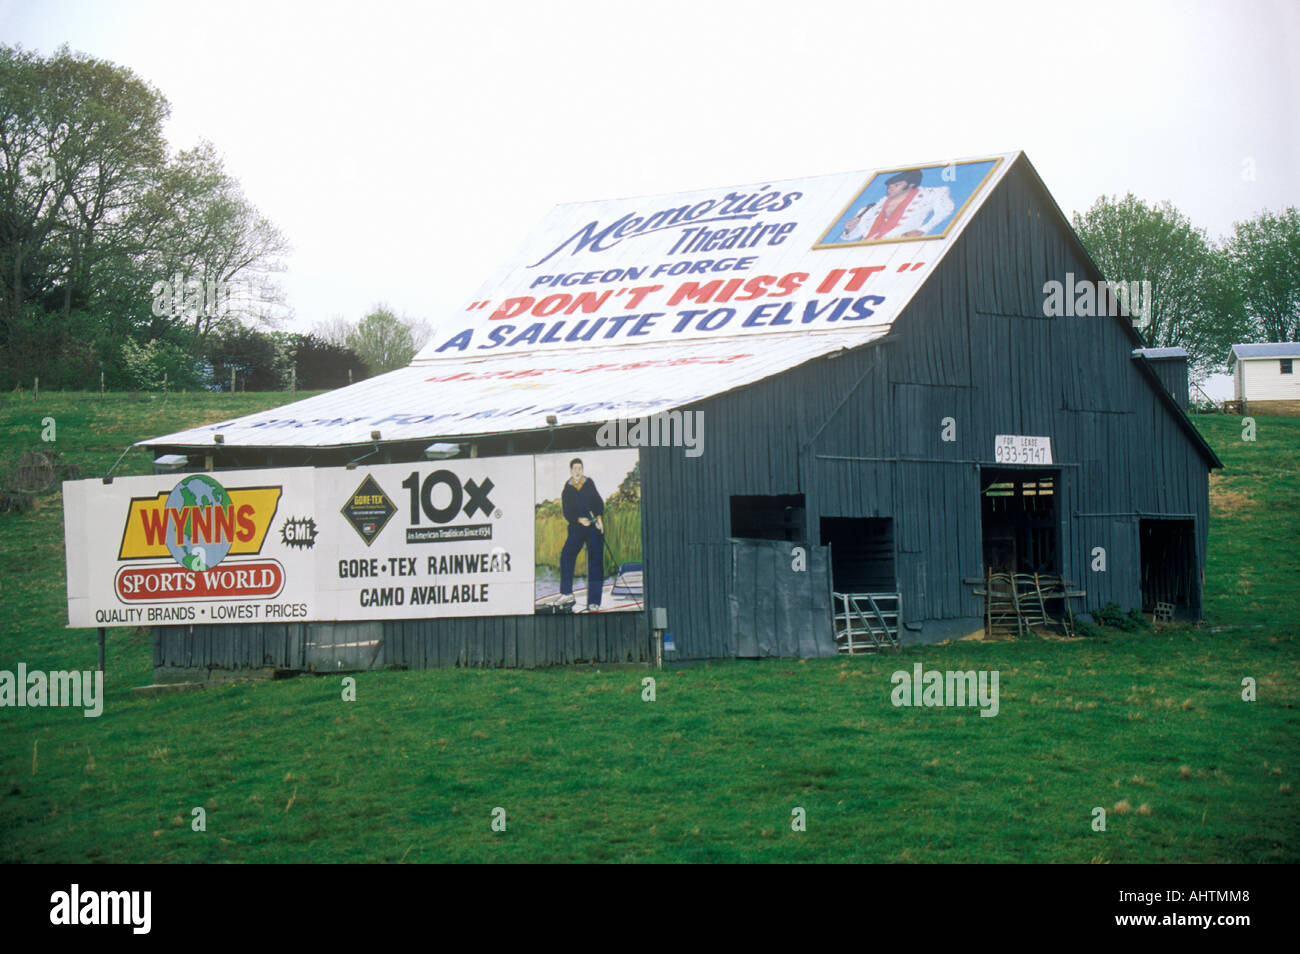 Advertisements plastering barn Southern United States - Stock Image